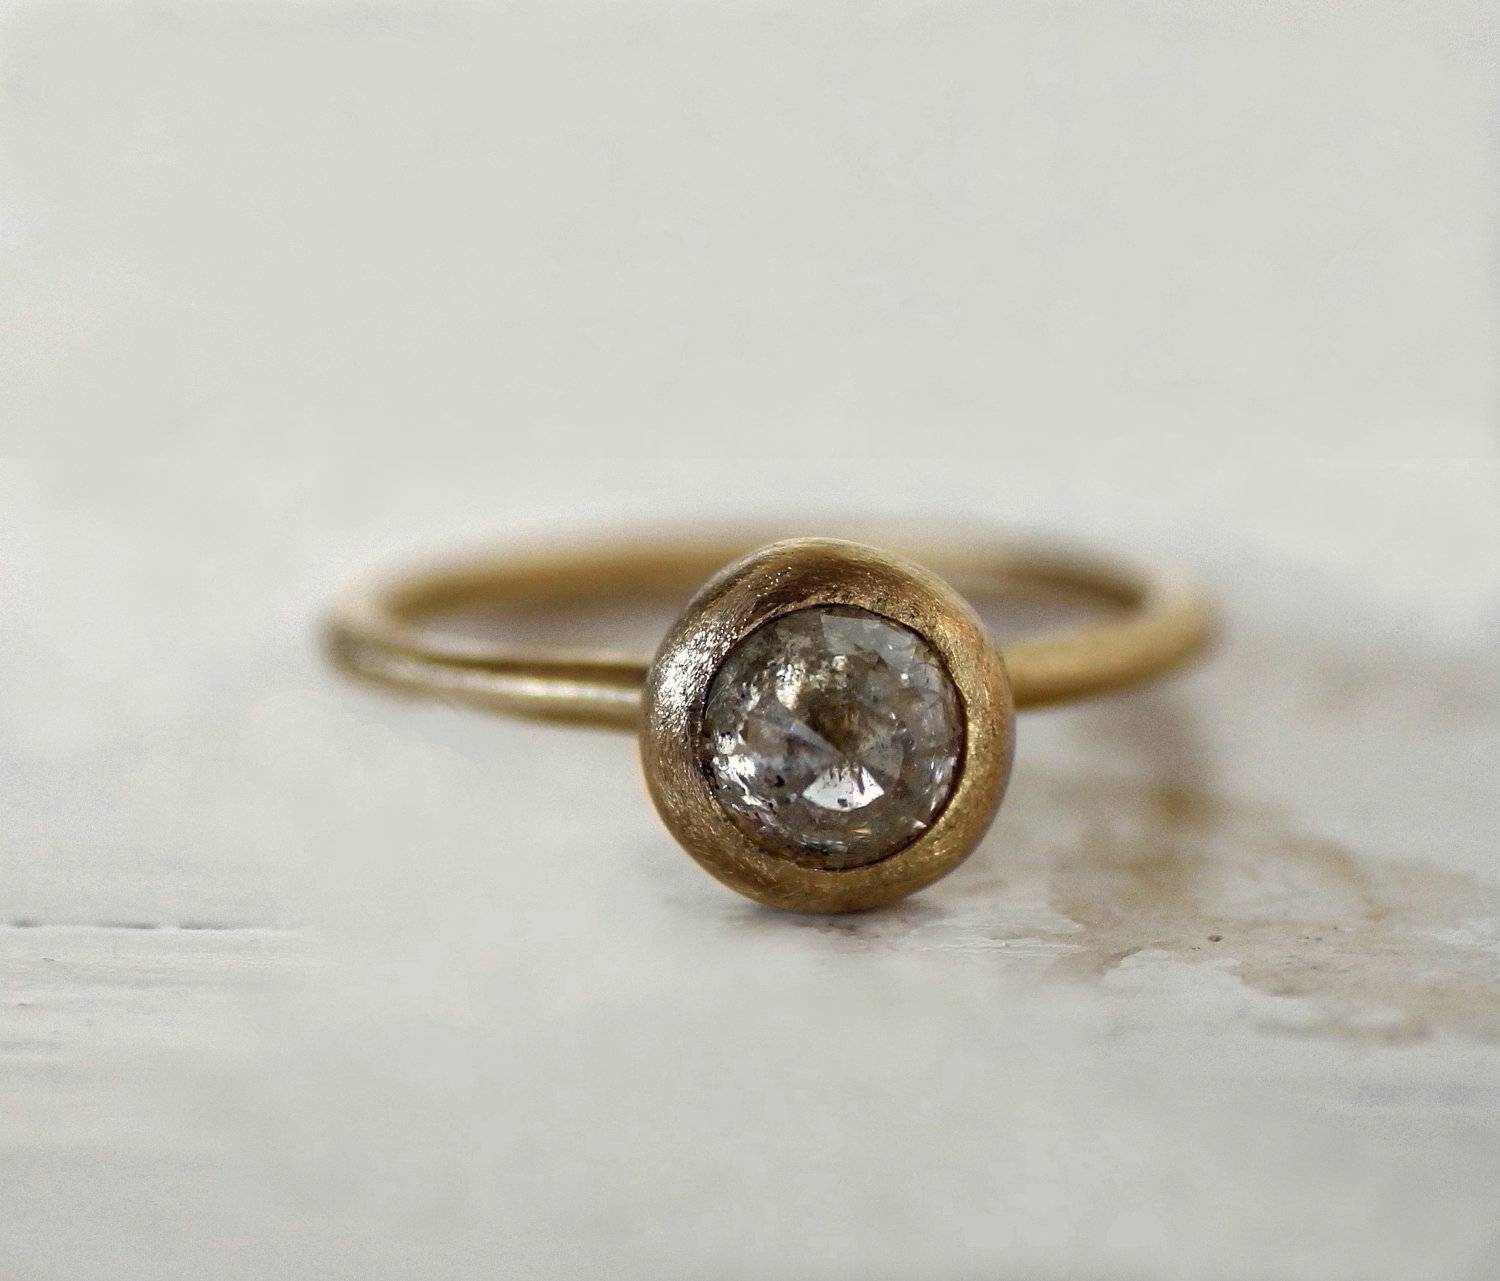 Rustic Engagement Rings | Cepagolf For Rustic Engagement Rings (View 6 of 15)